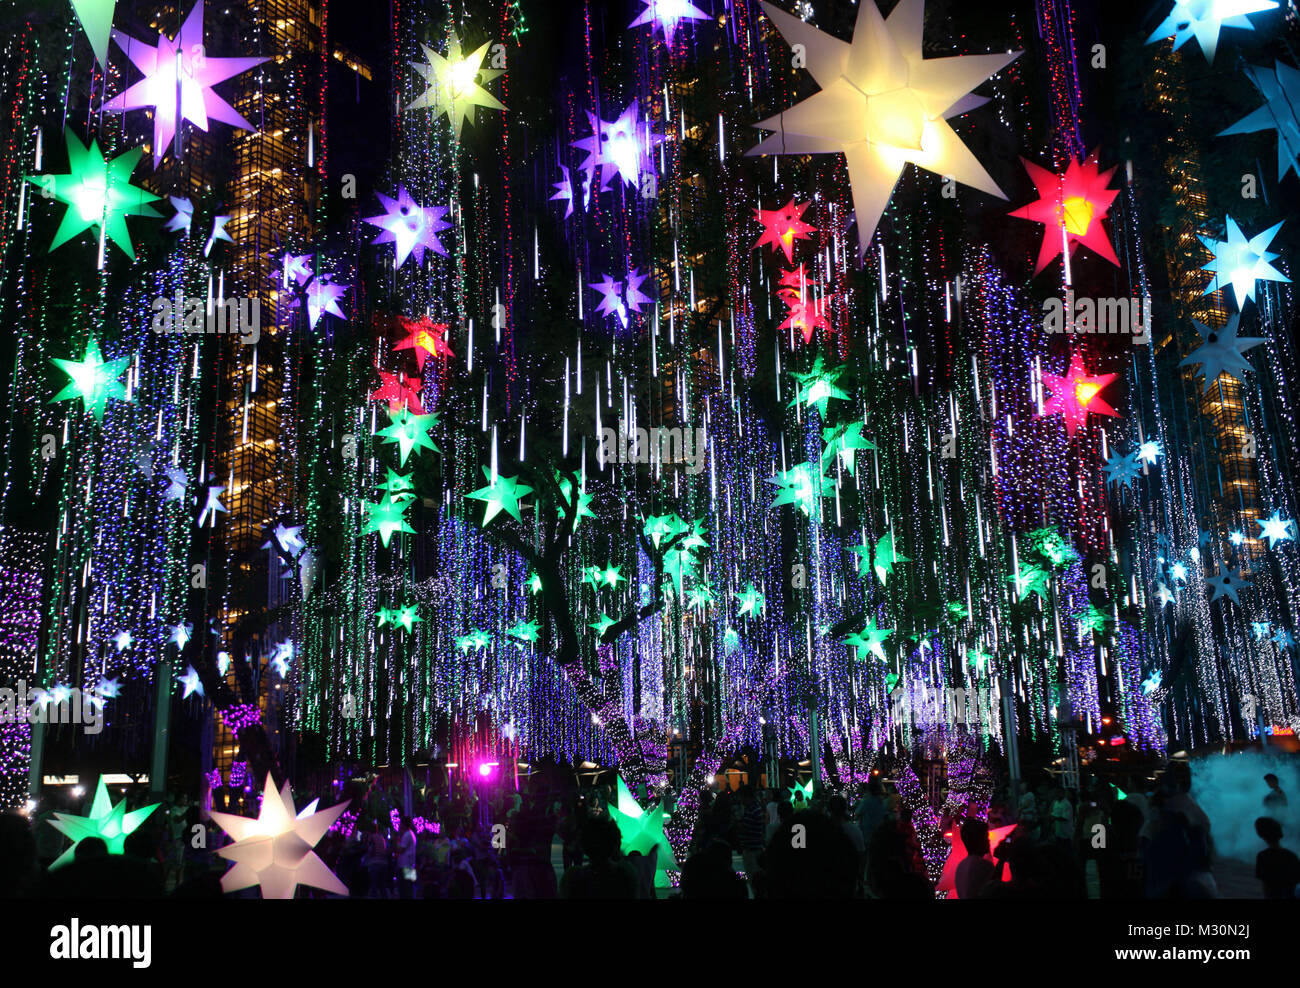 Christmas decoration in Manila, Luzon Island, Philippines, Asia - Stock Image